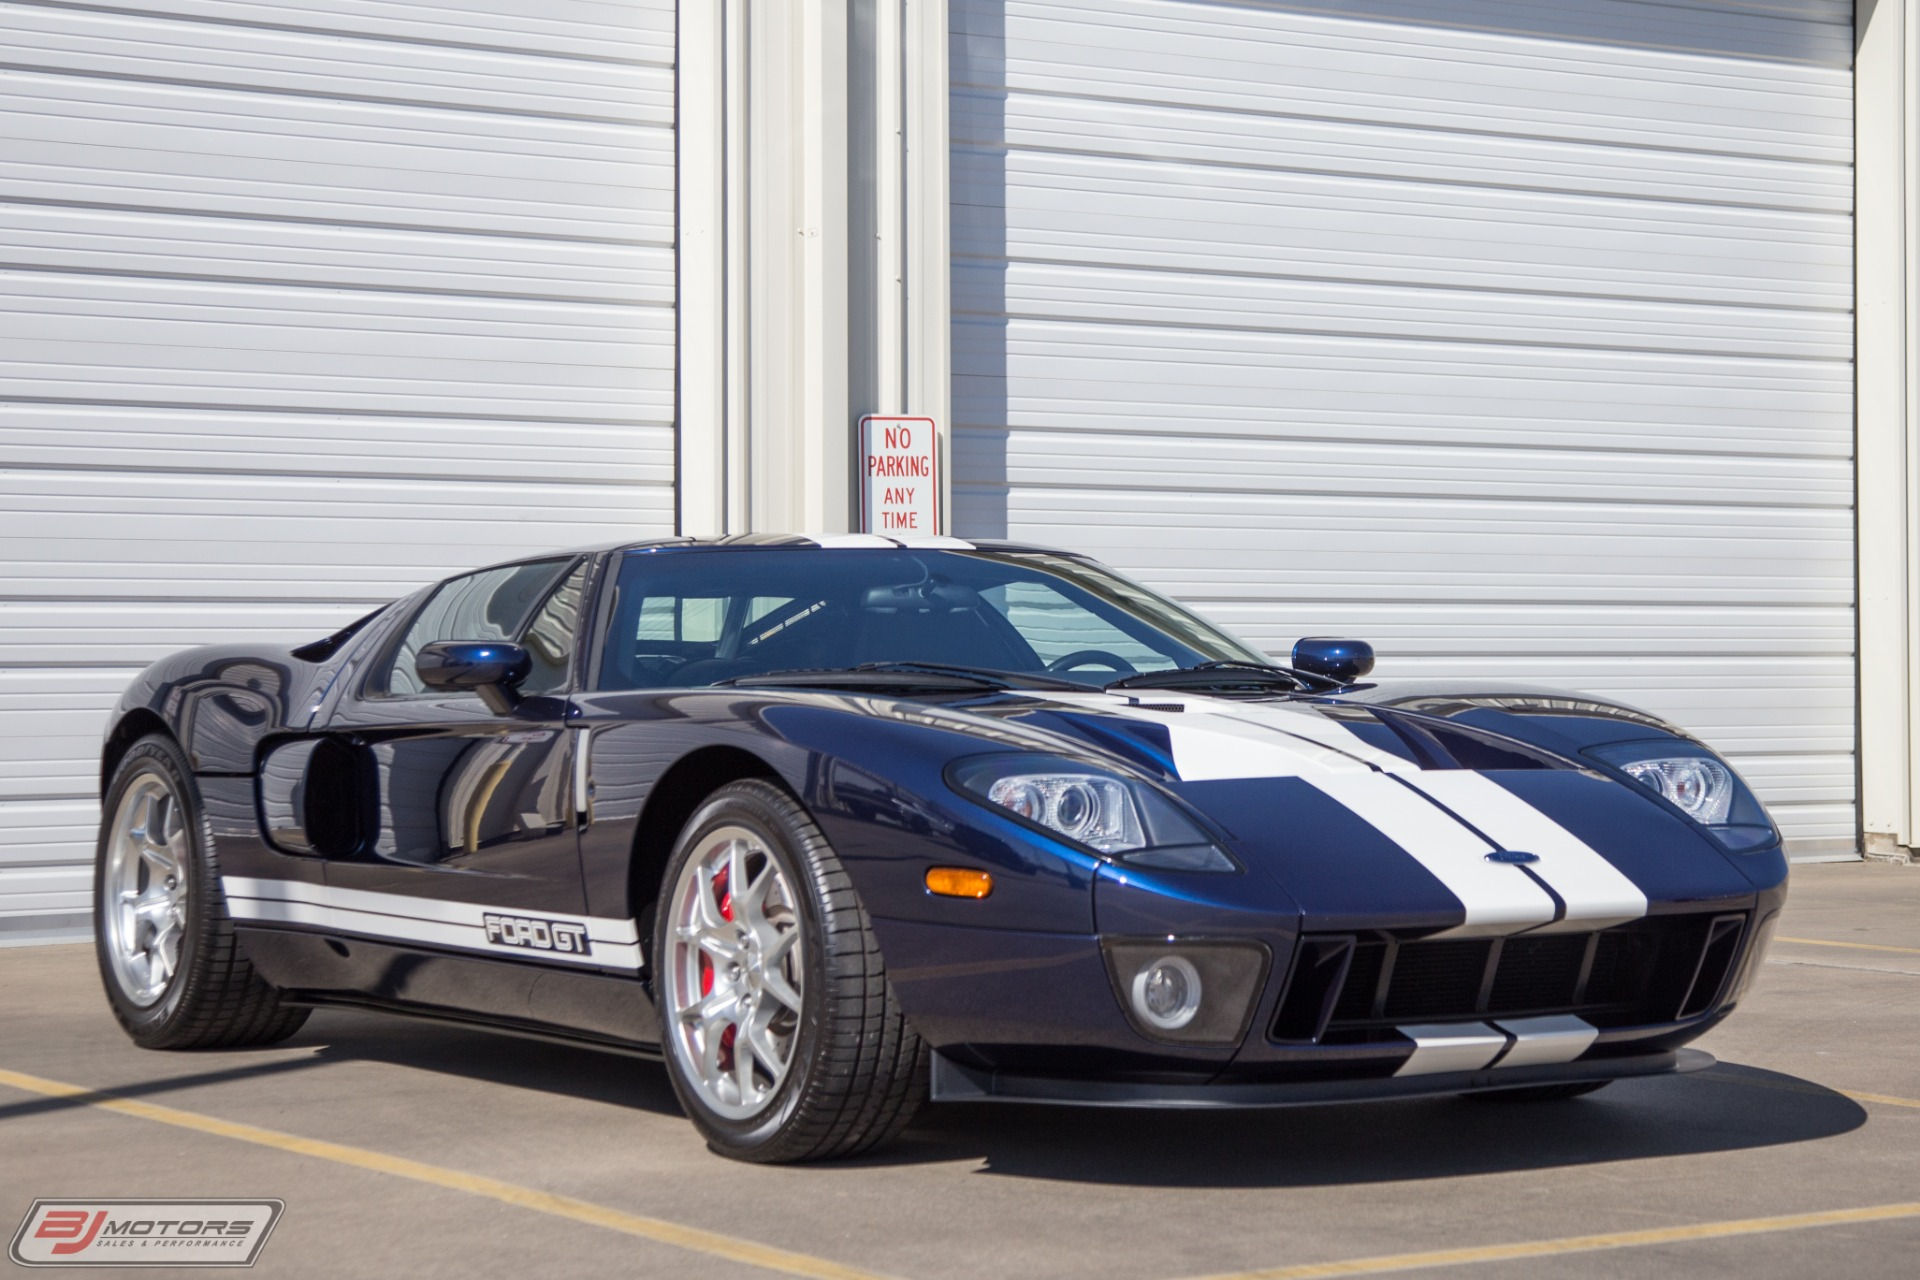 Image result for Ford GT Midnight Blue Clearcoat Metallic